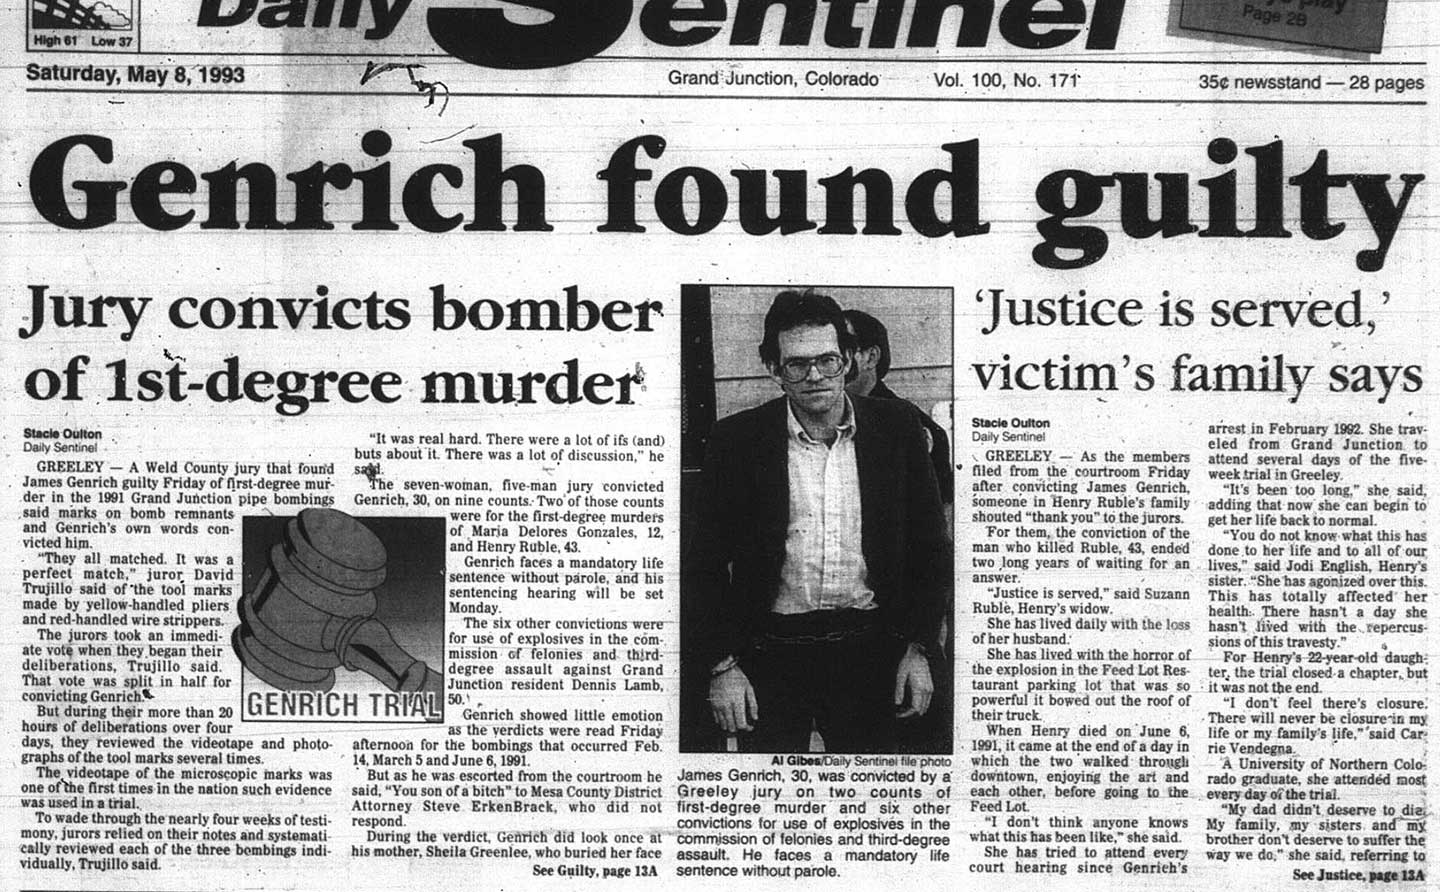 Forensic Science Put Jimmy Genrich in Prison for 24 Years